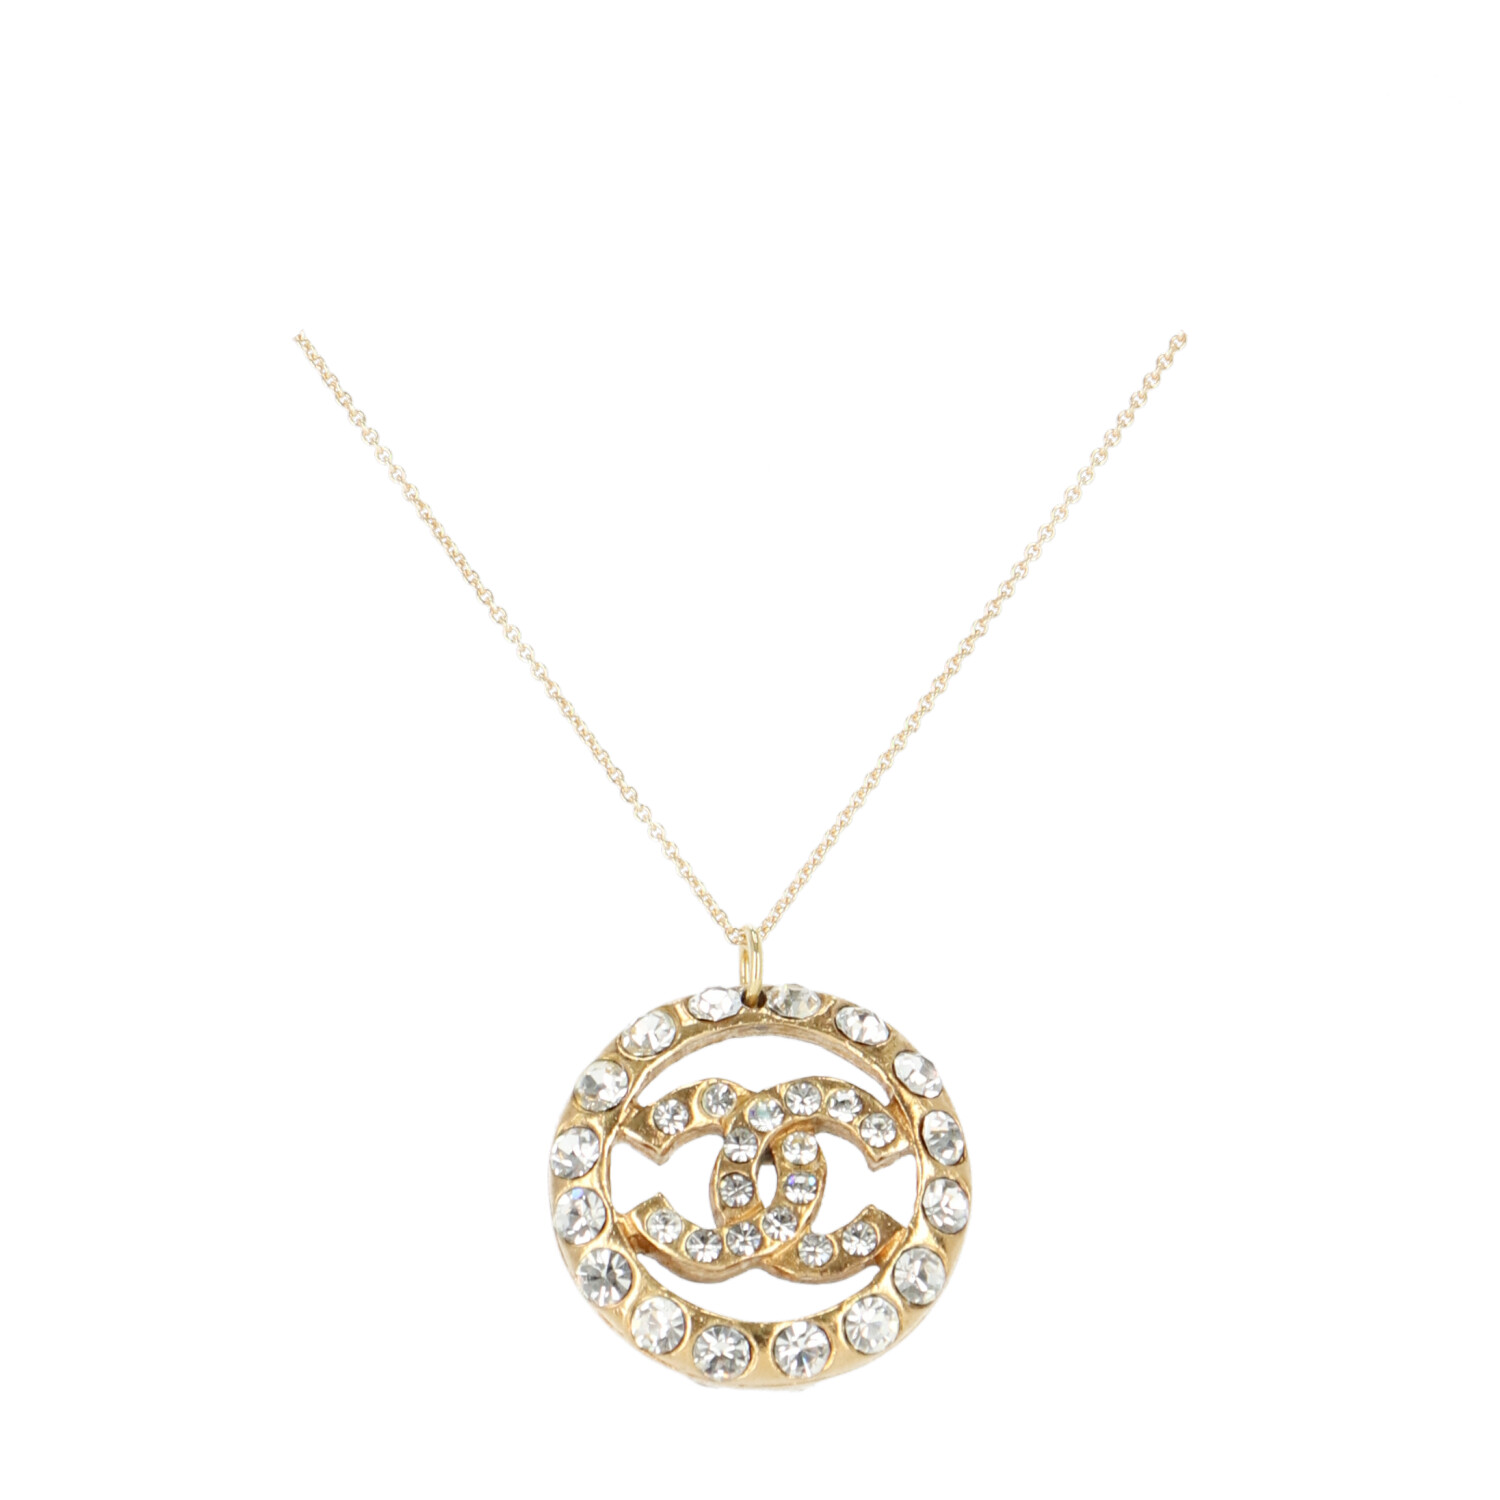 Chanel Gold TVB Repurposed Necklace